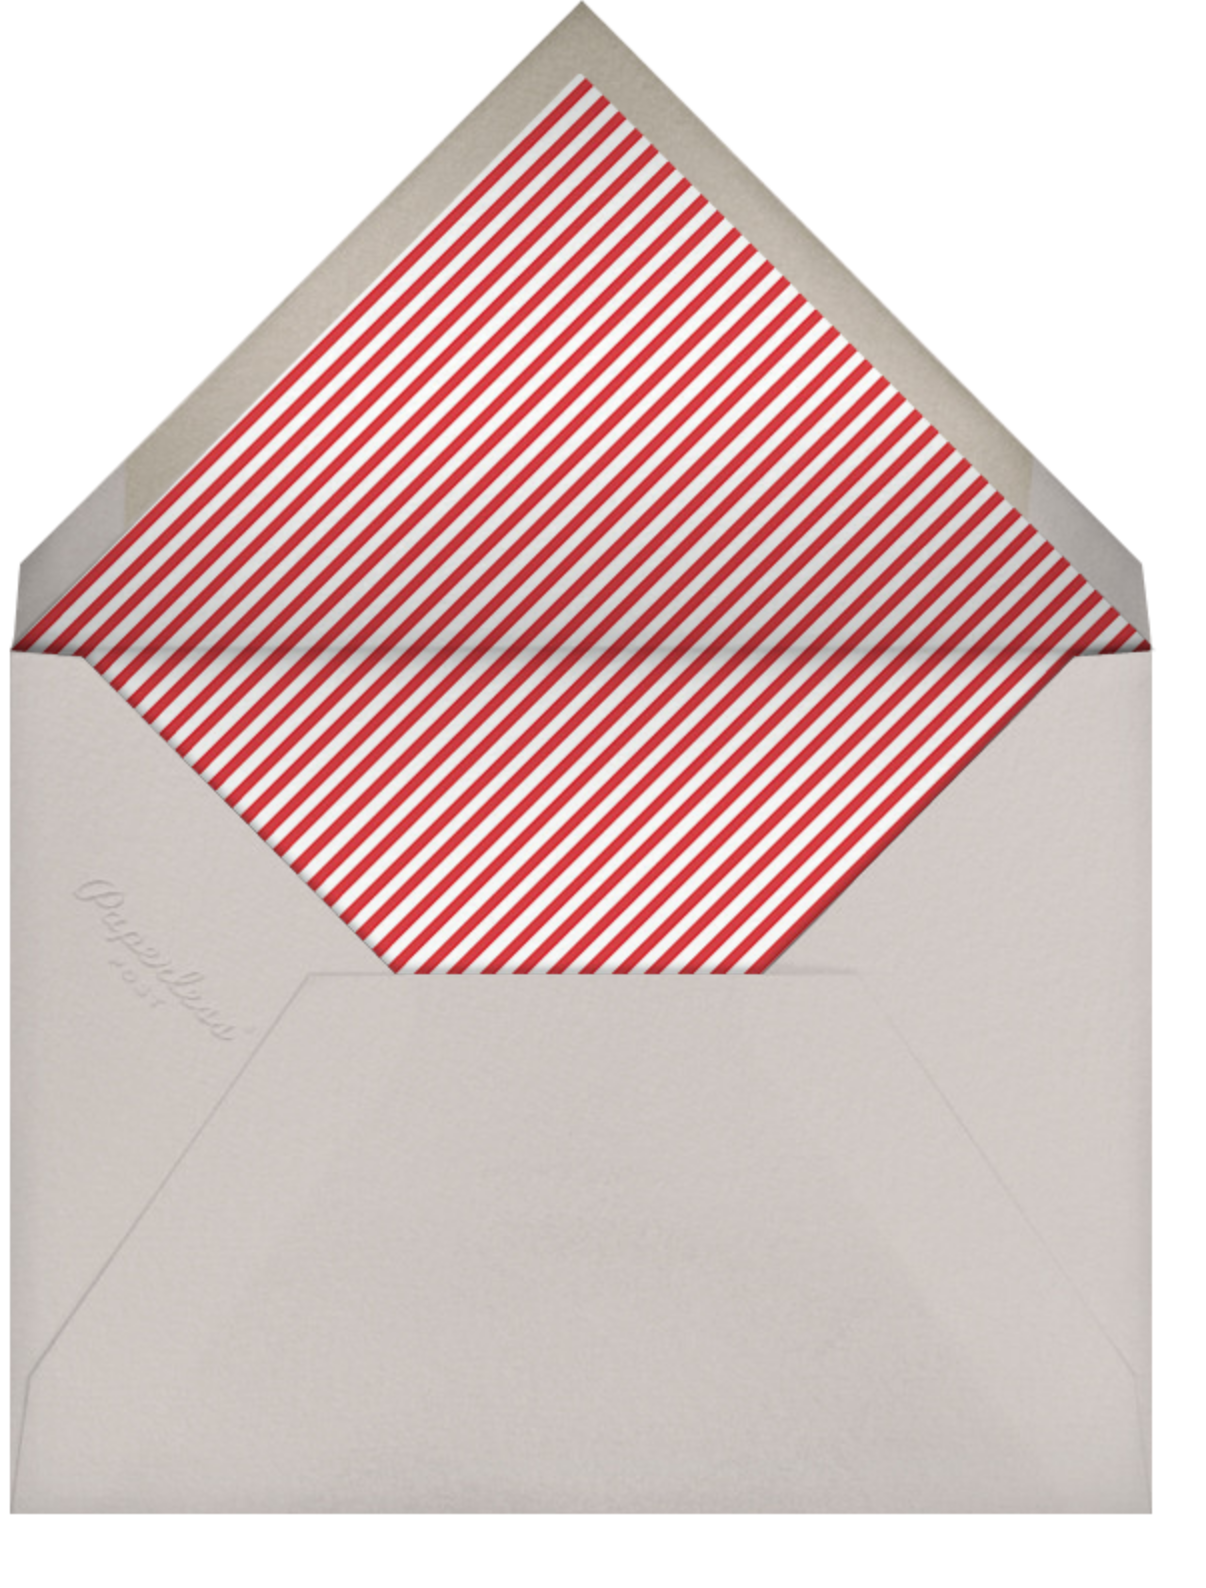 Ever After - Tall - Linda and Harriett - Engagement party - envelope back